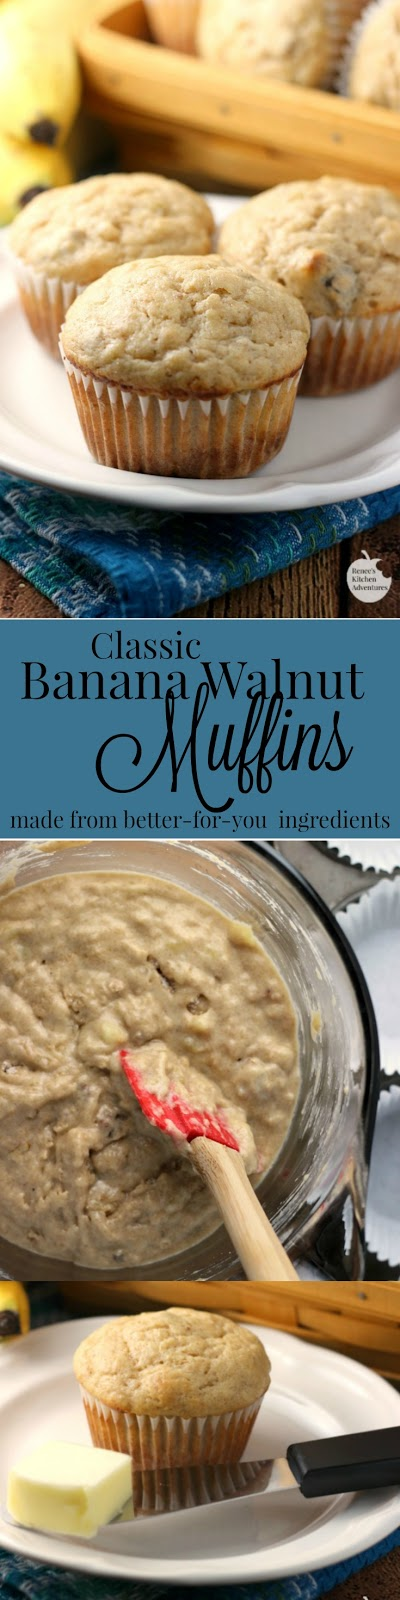 Banana Walnut Muffins | by Renee's Kitchen Adventures - better-for-you easy banana walnut recipe. Makes a great breakfast treat or snack. #banana #muffins